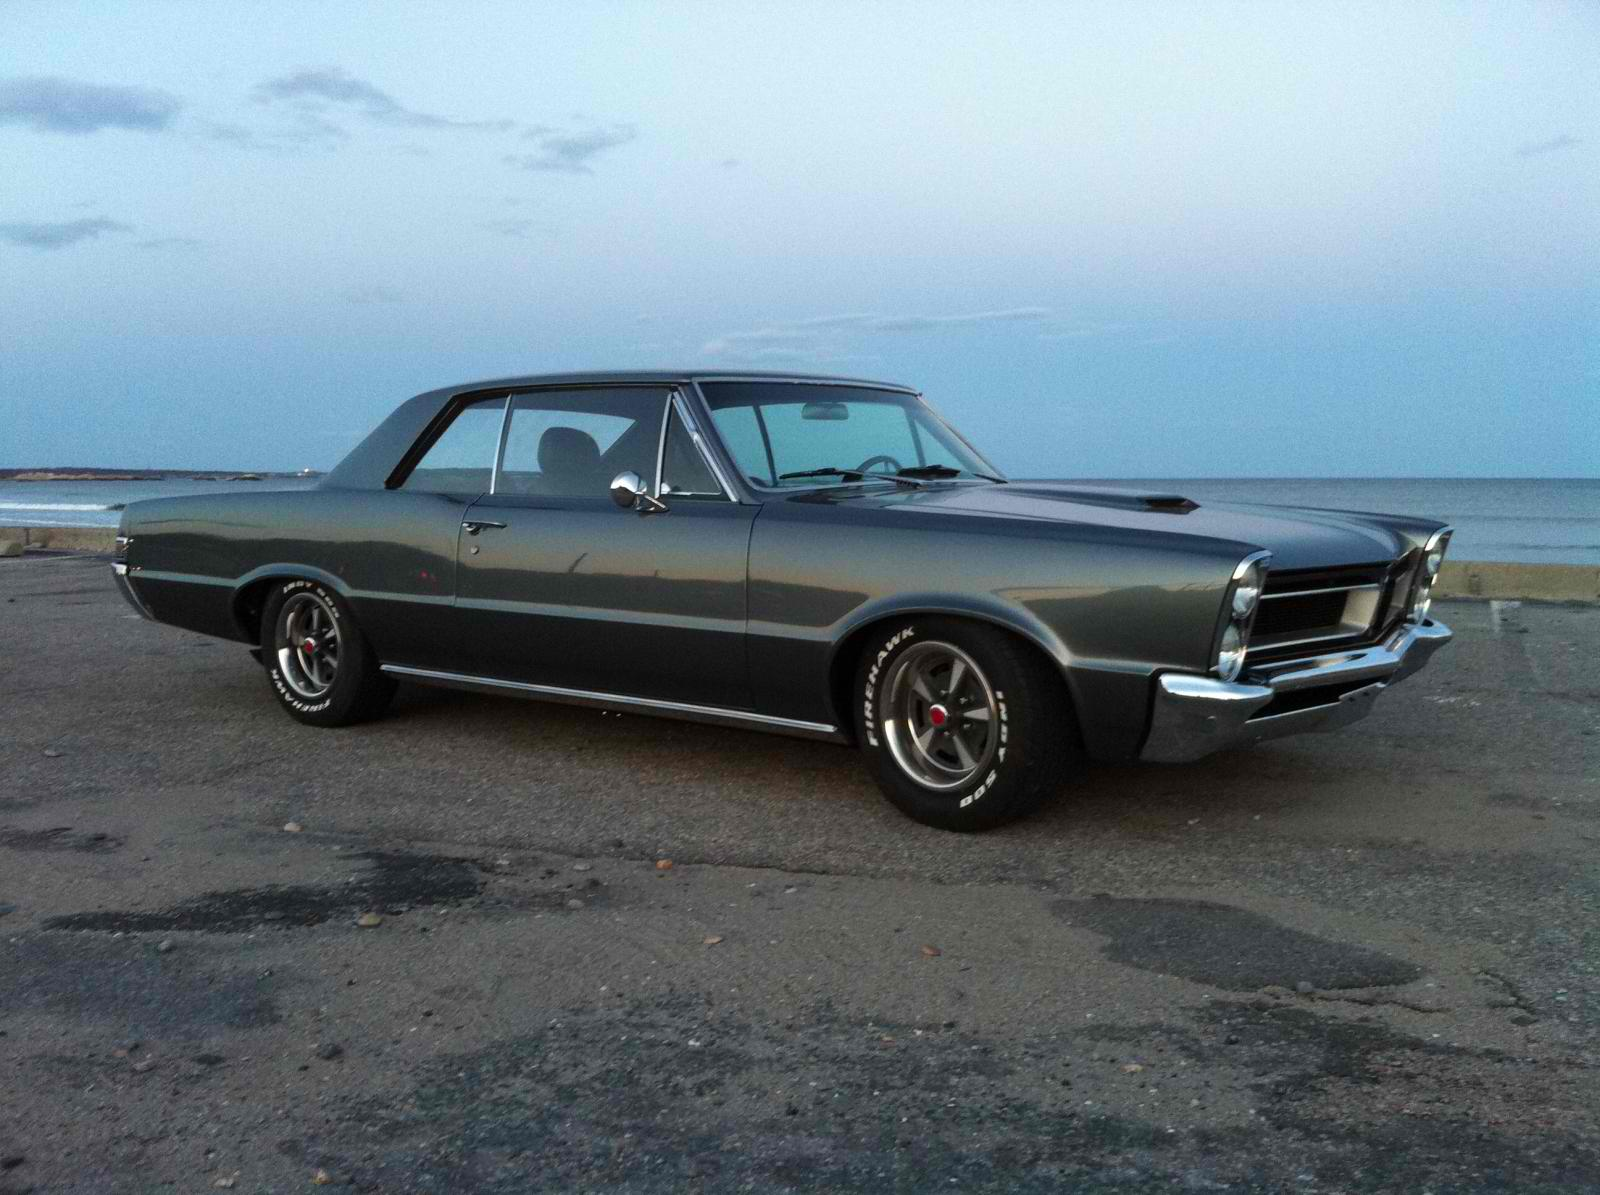 Sale further 66 Chevelle Ss Craigslist moreover Random Picture Thread Work Warning T20030p3699 additionally 1966 Chevrolet Chevelle Pictures C3652 together with 1965 chevy impala ss convertible. on 1966 chevrolet 427 ss chevelle